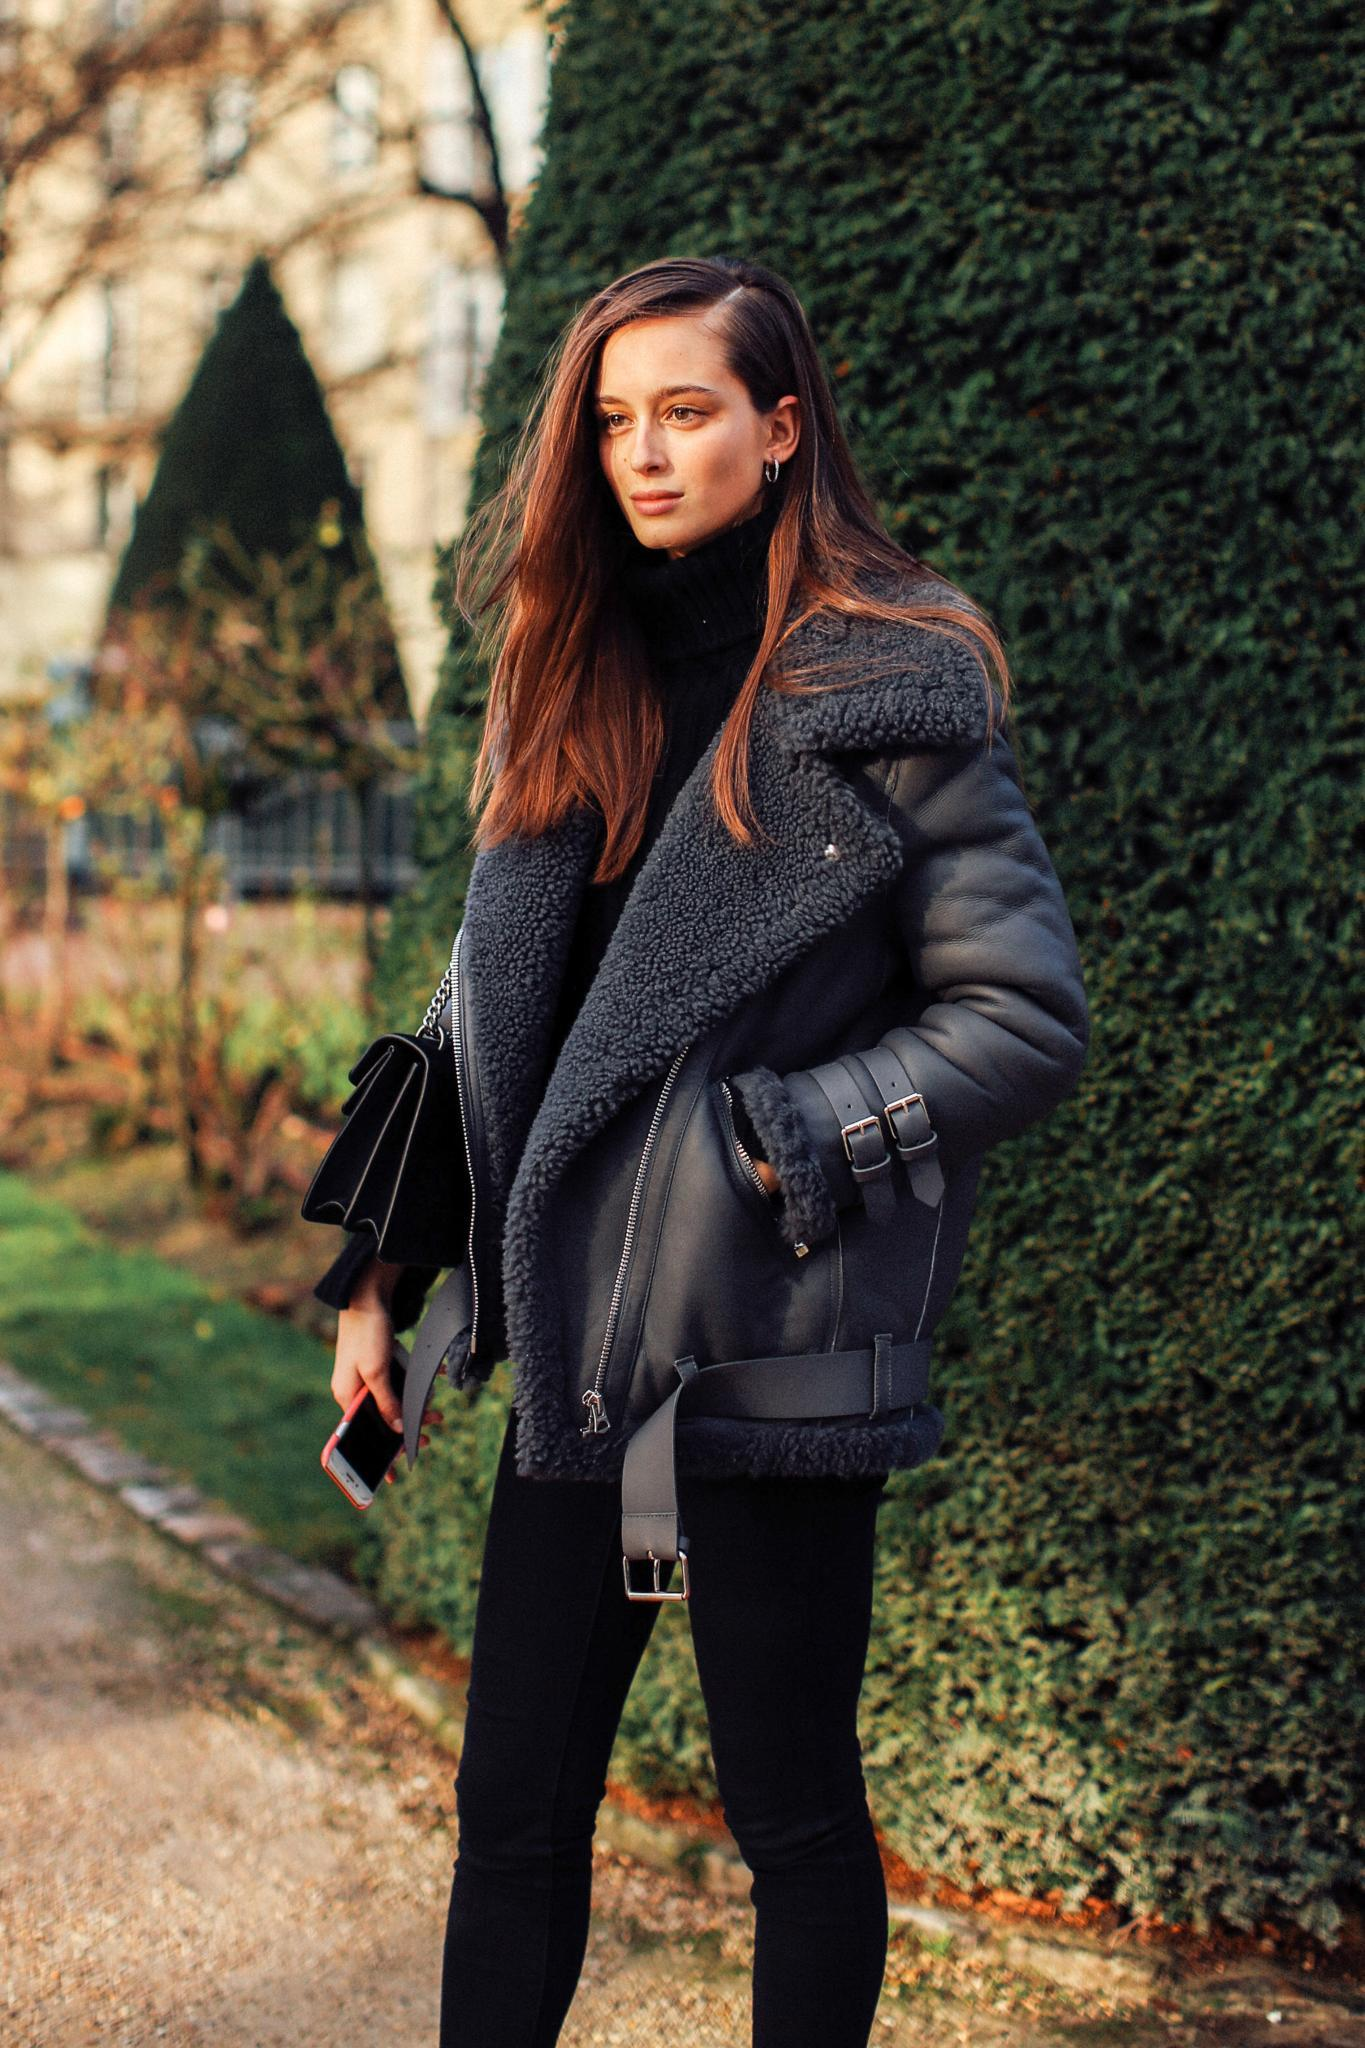 Mother's Day hair: Woman with long brown hair wearing a black coat outdoors